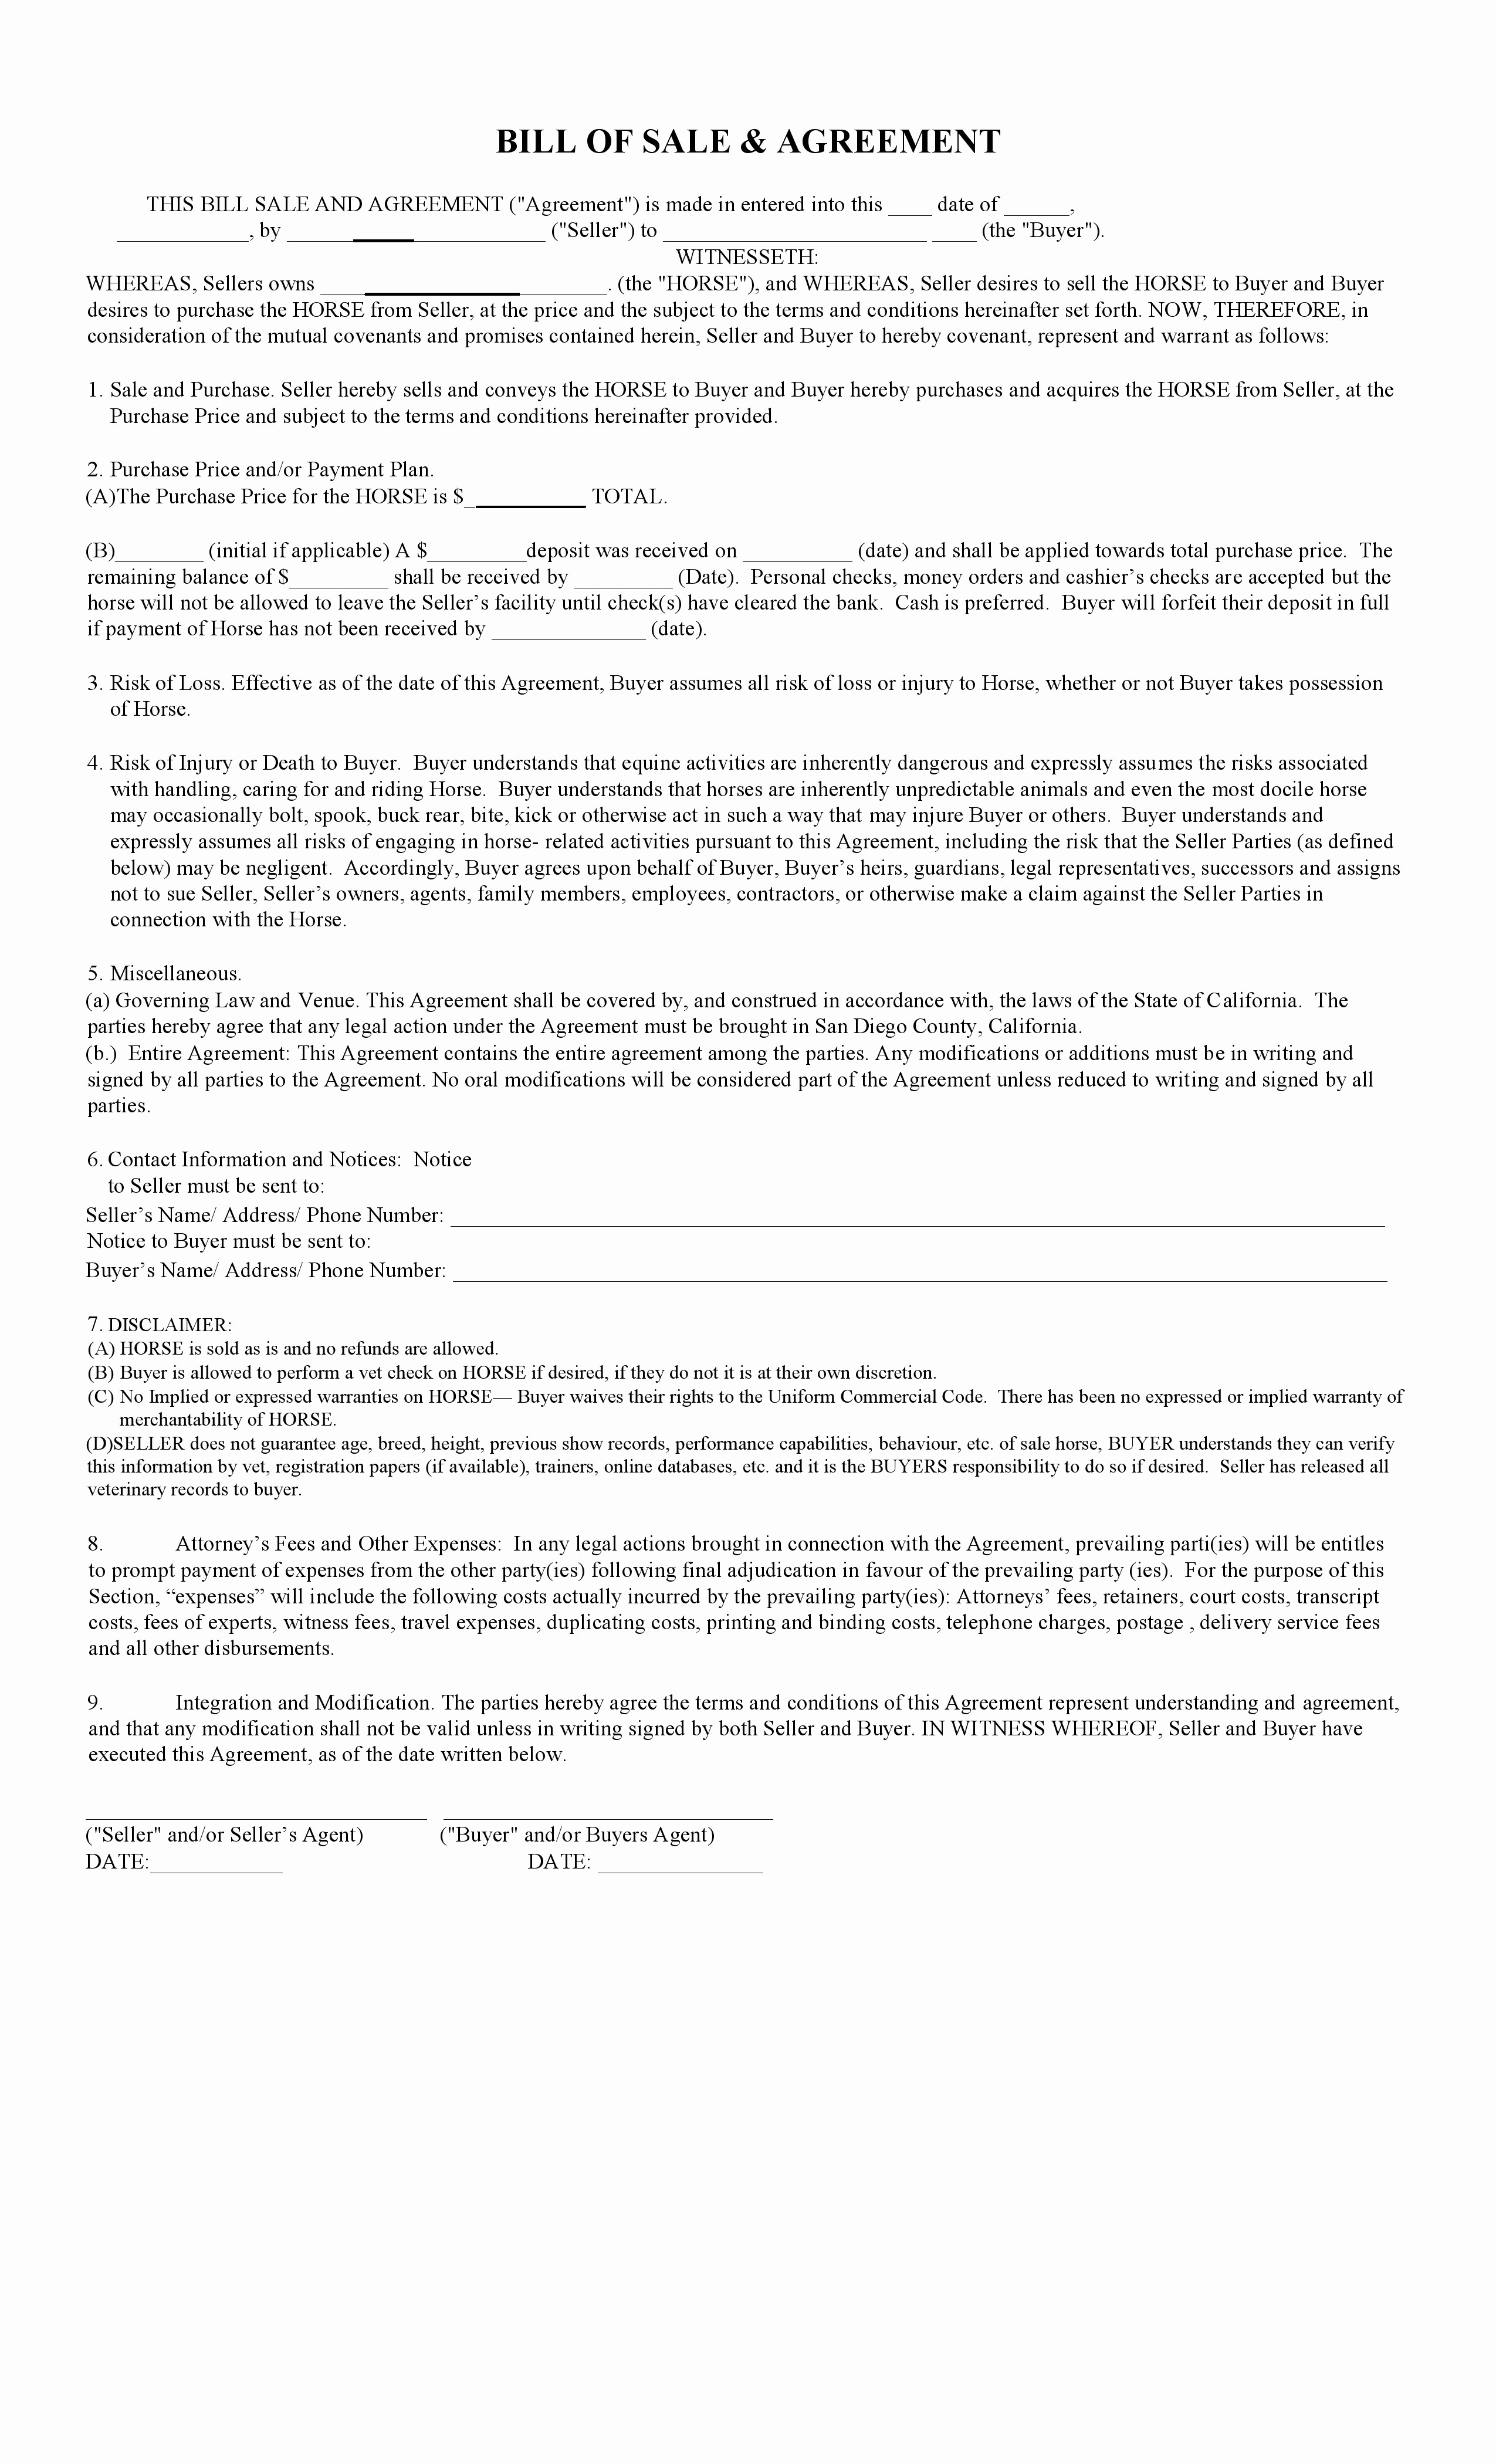 Free Bill Of Sale Contract Luxury Free California Horse Bill Of Sale & Agreement Template